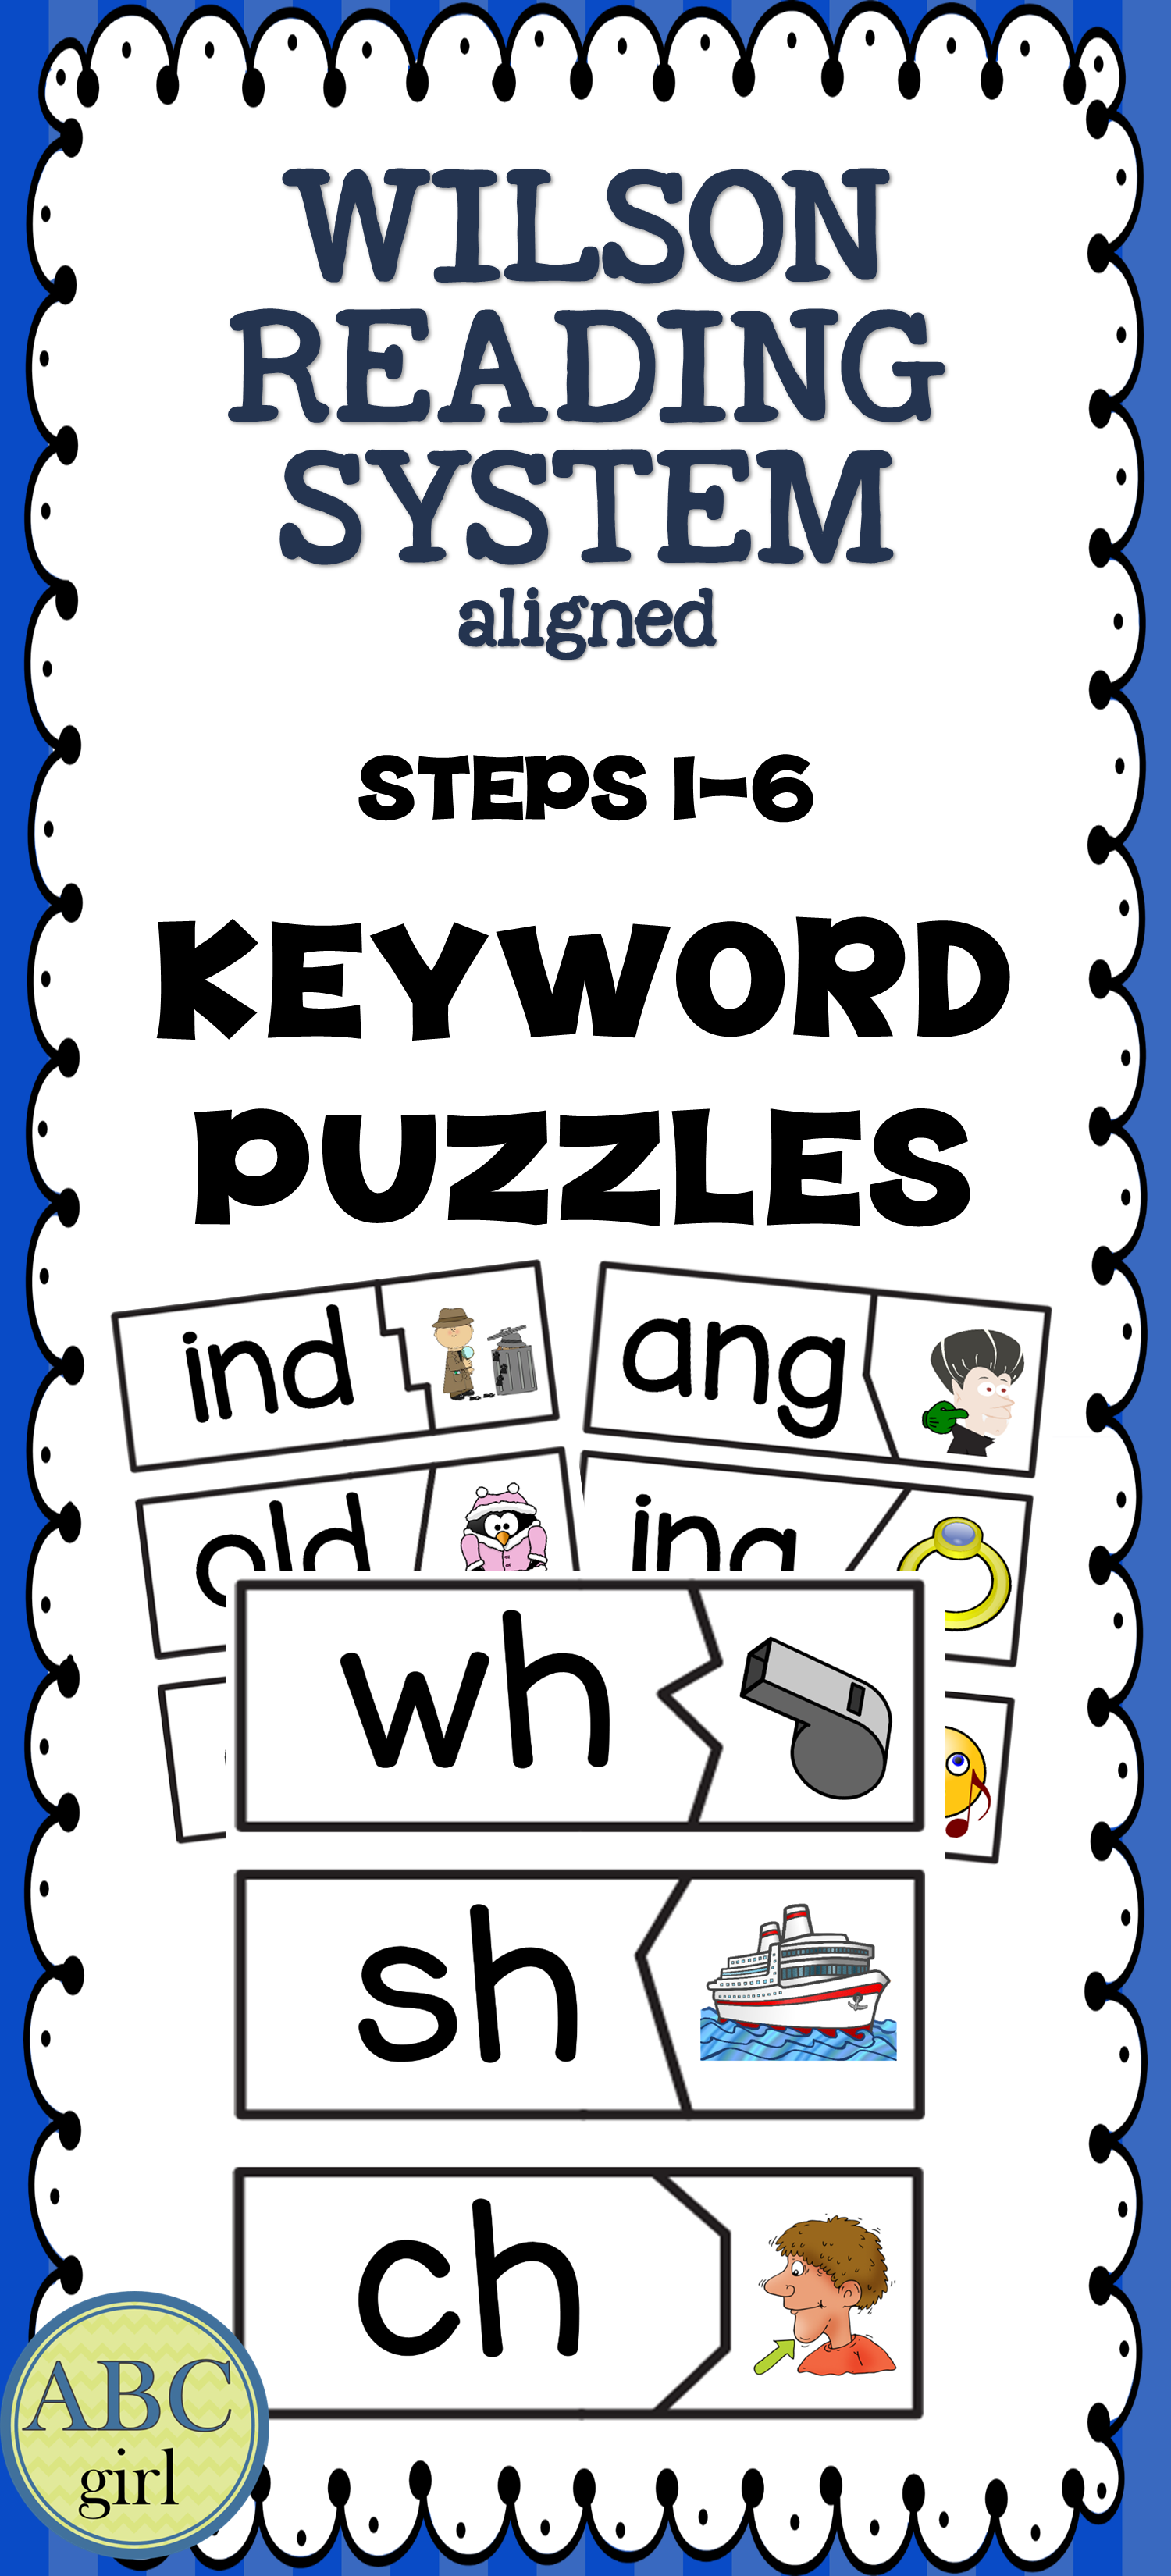 Wilson Reading System® Aligned Keyword Puzzles Steps 1-6.  #wilsonreadingsystem #fundations #wilsonr…   Wilson reading system [ 3300 x 1500 Pixel ]